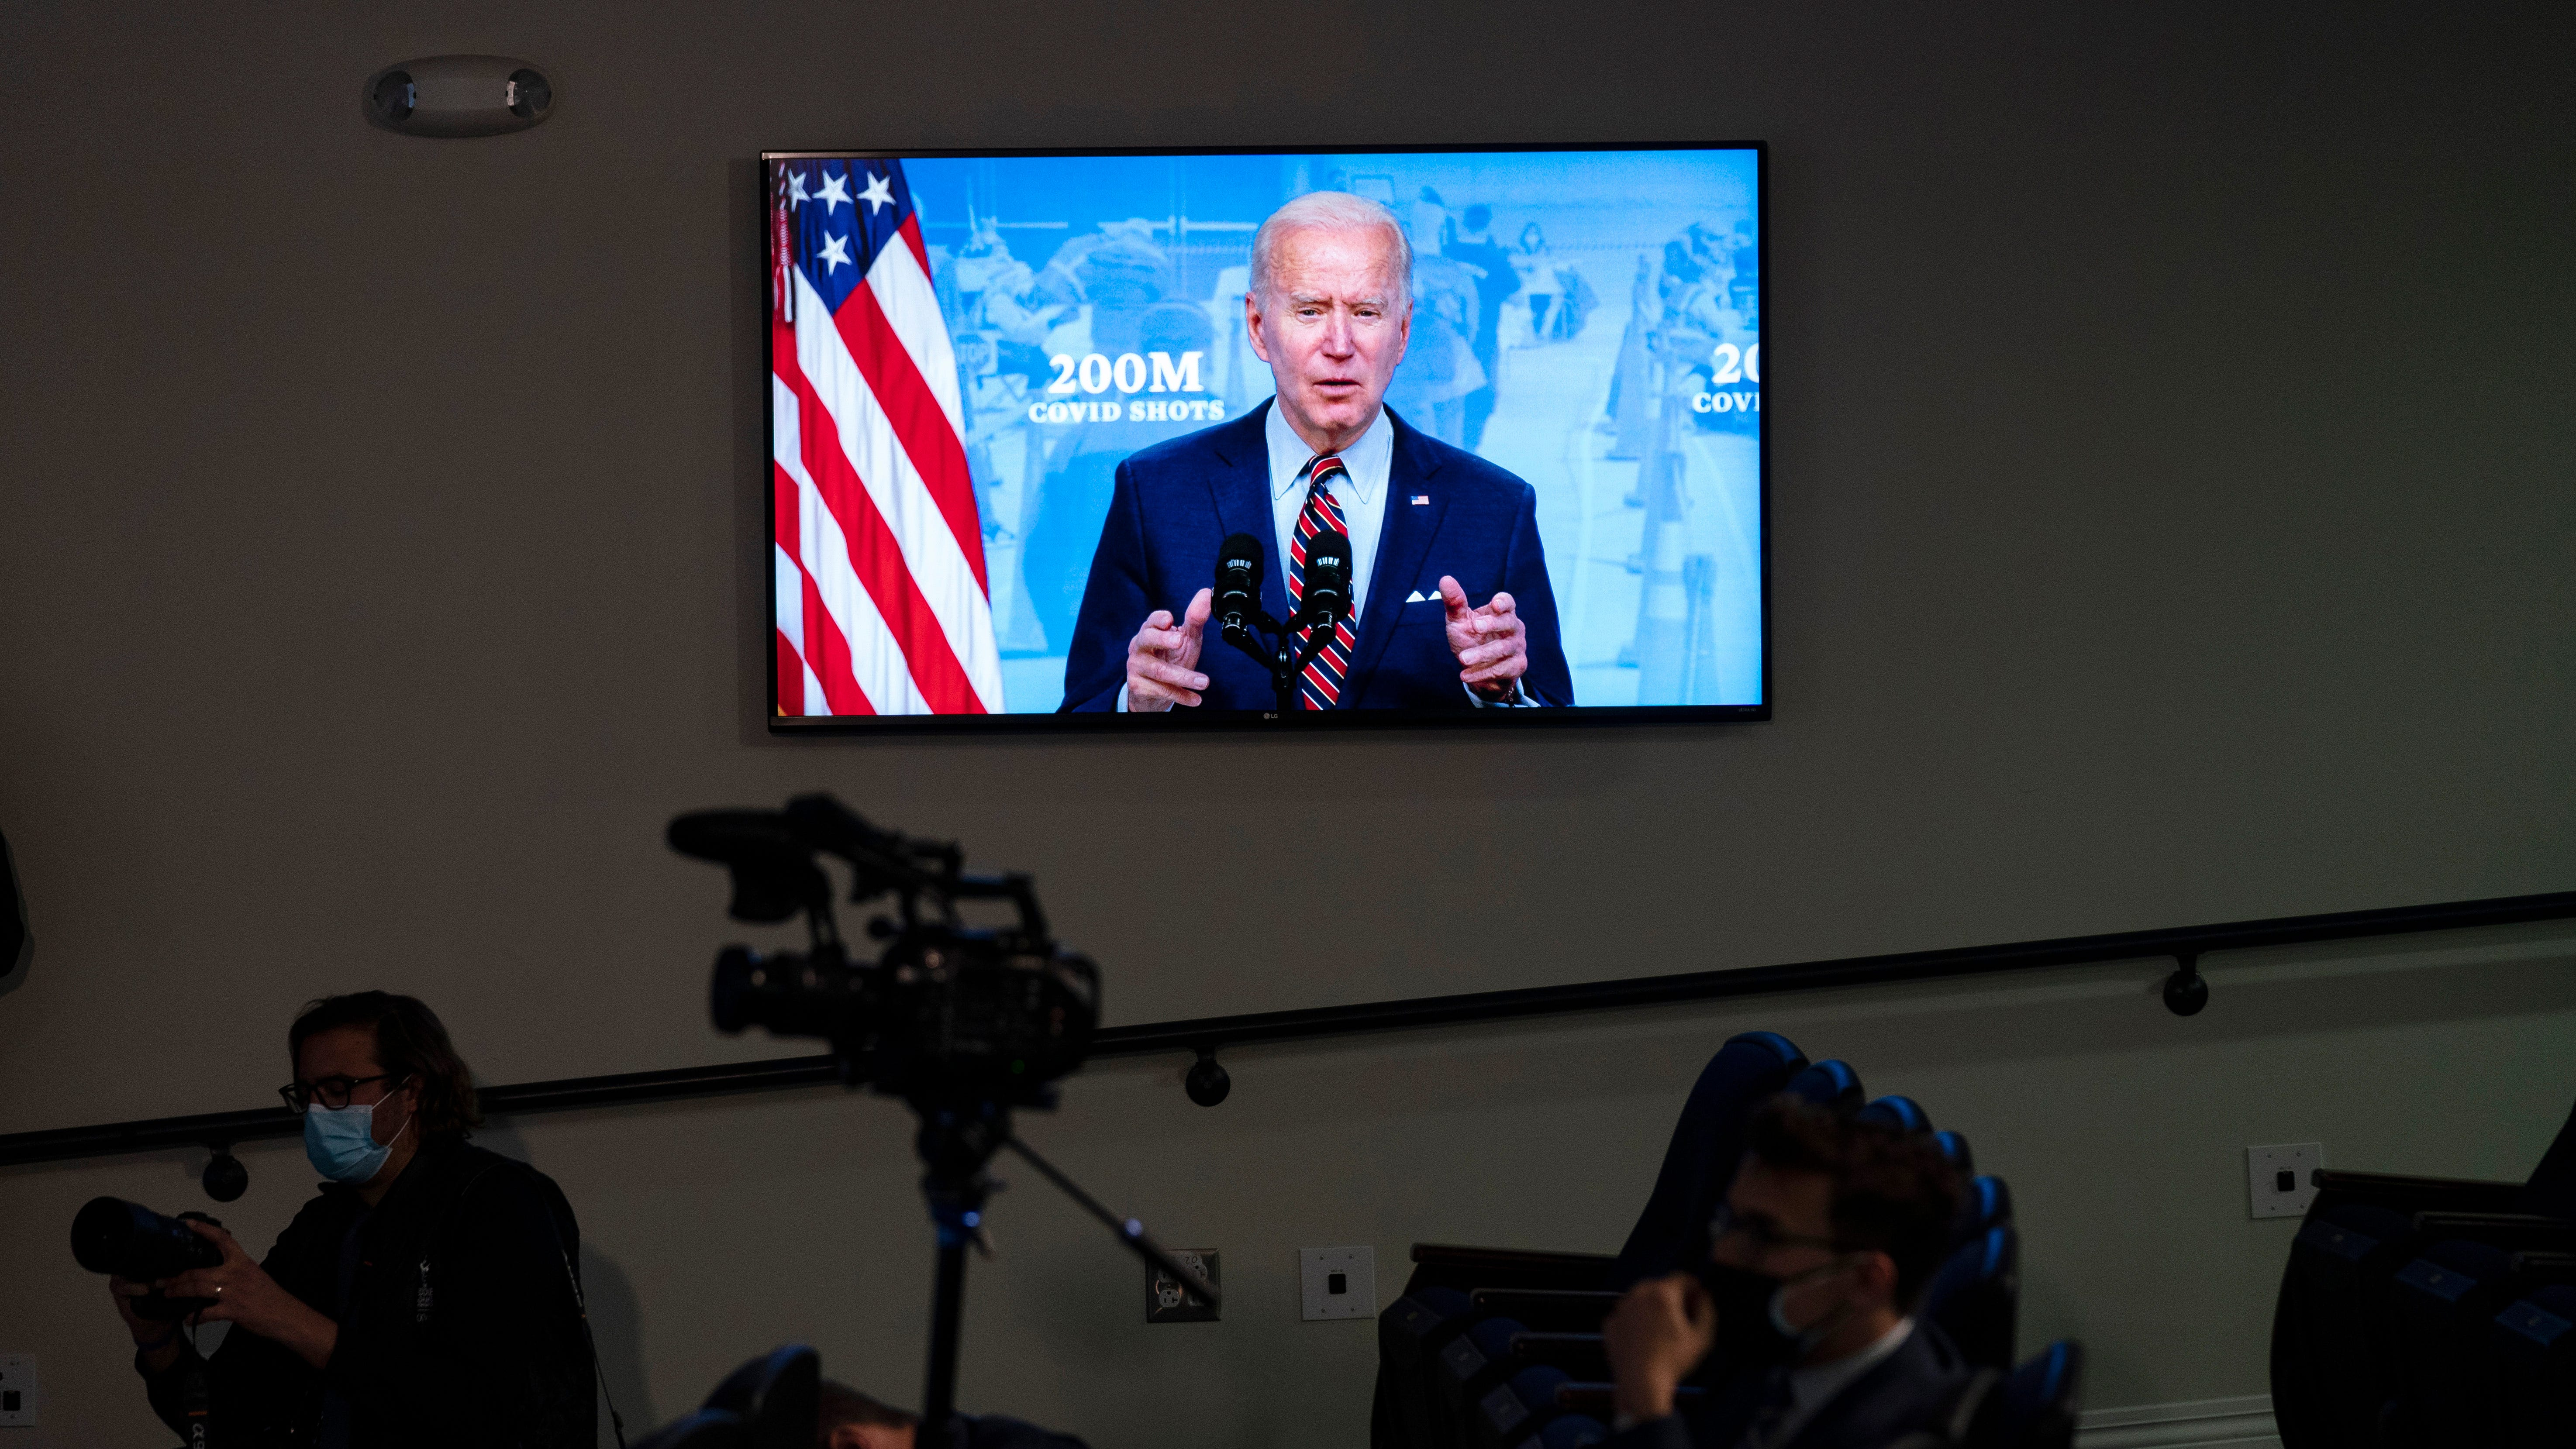 President Joe Biden speaks about COVID-19 vaccinations at the White House, Wednesday in Washington.